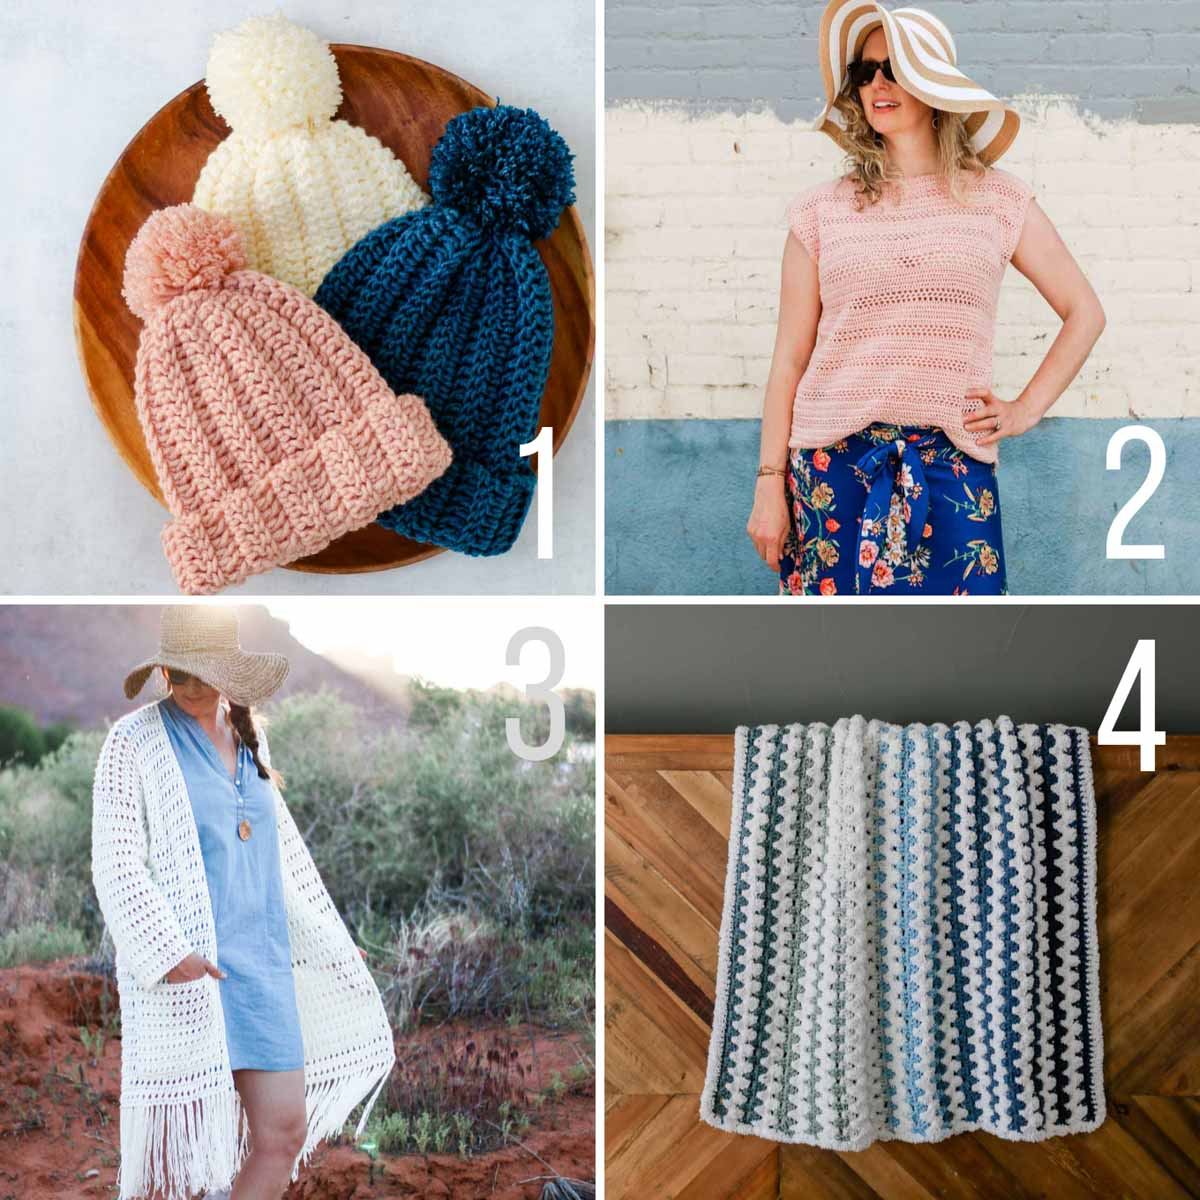 Beginner friendly crochet patterns, including a crochet beanie, a crochet top, a long crochet cardigan with fringe, and a soft crochet baby blanket.